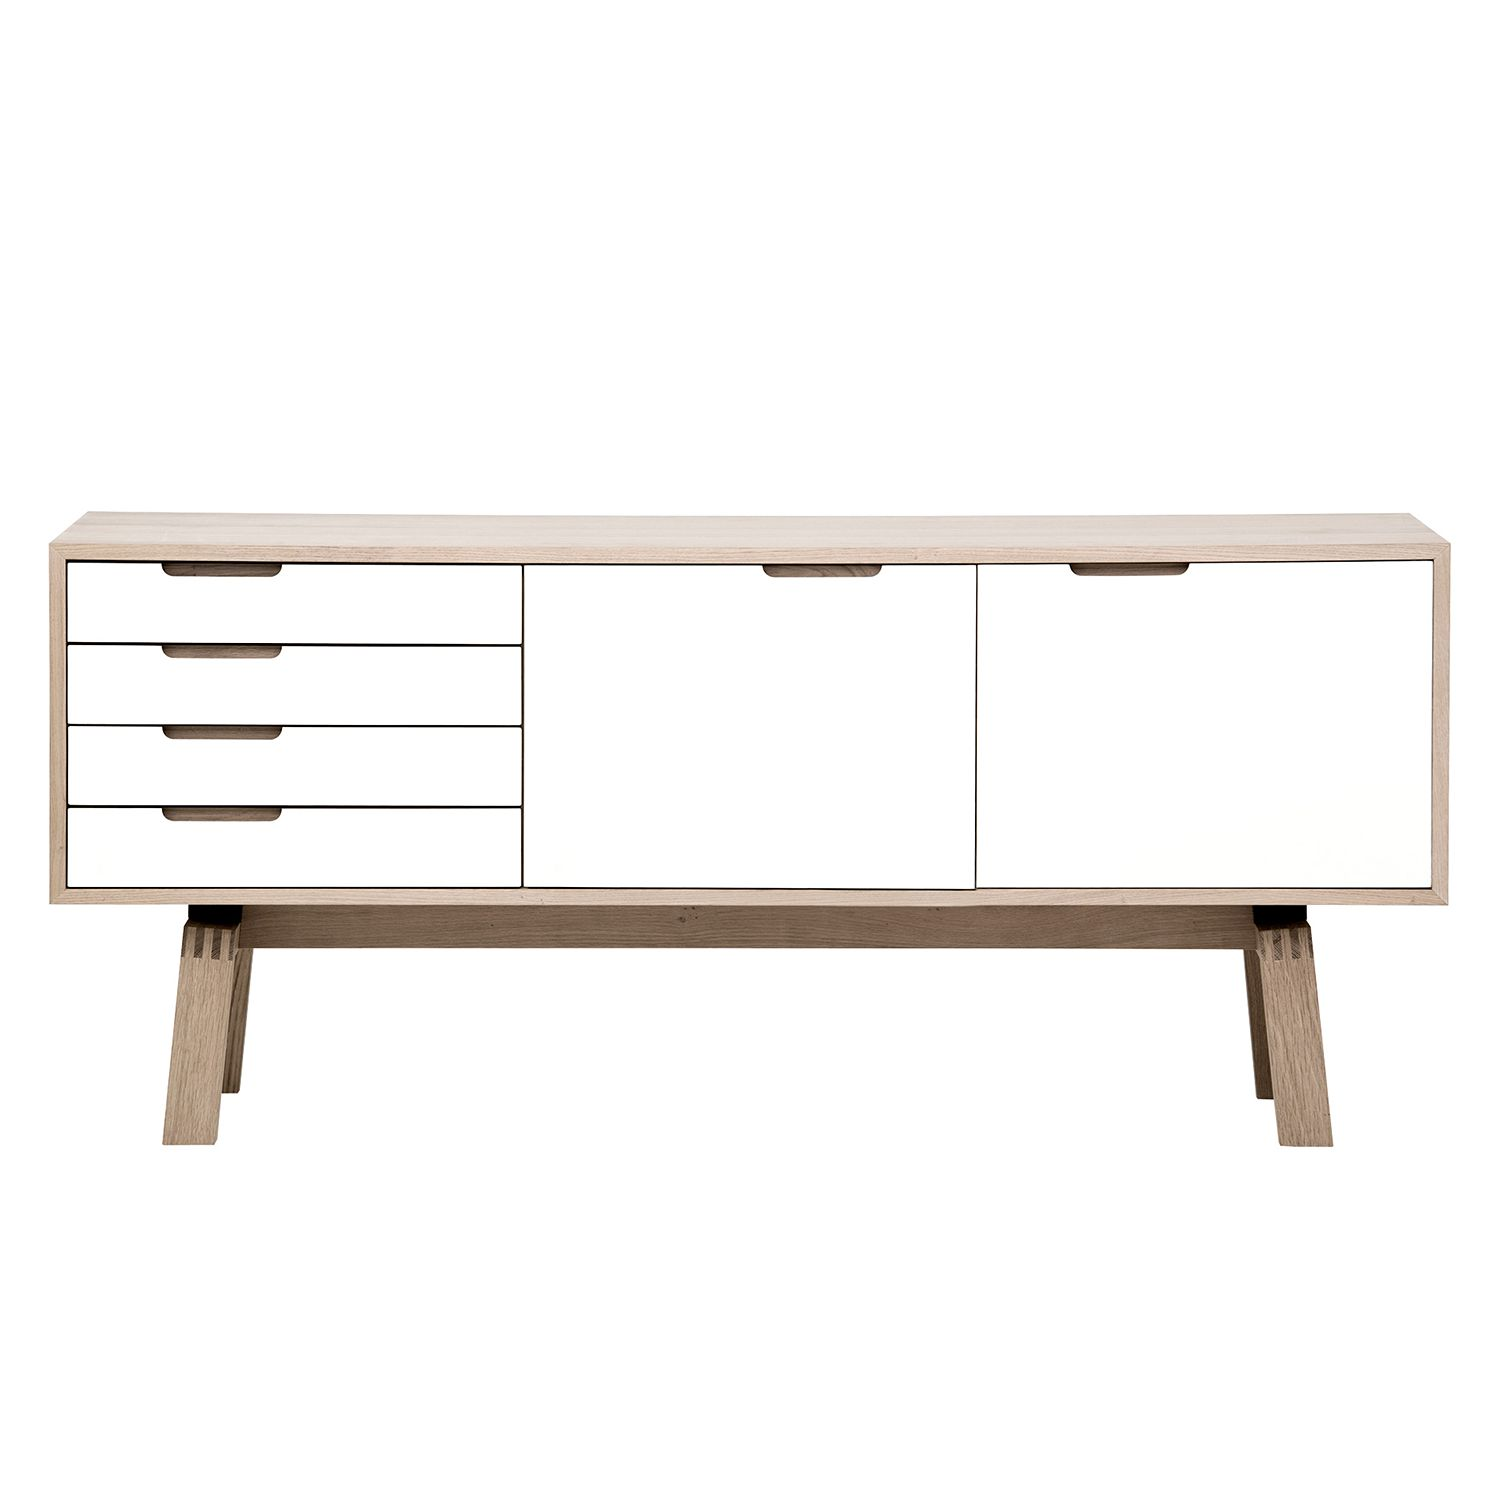 sideboard tiefe 30 cm kommoden 30 cm tief ikea hurdal chest of 9 drawers plenty kommode tiefe. Black Bedroom Furniture Sets. Home Design Ideas